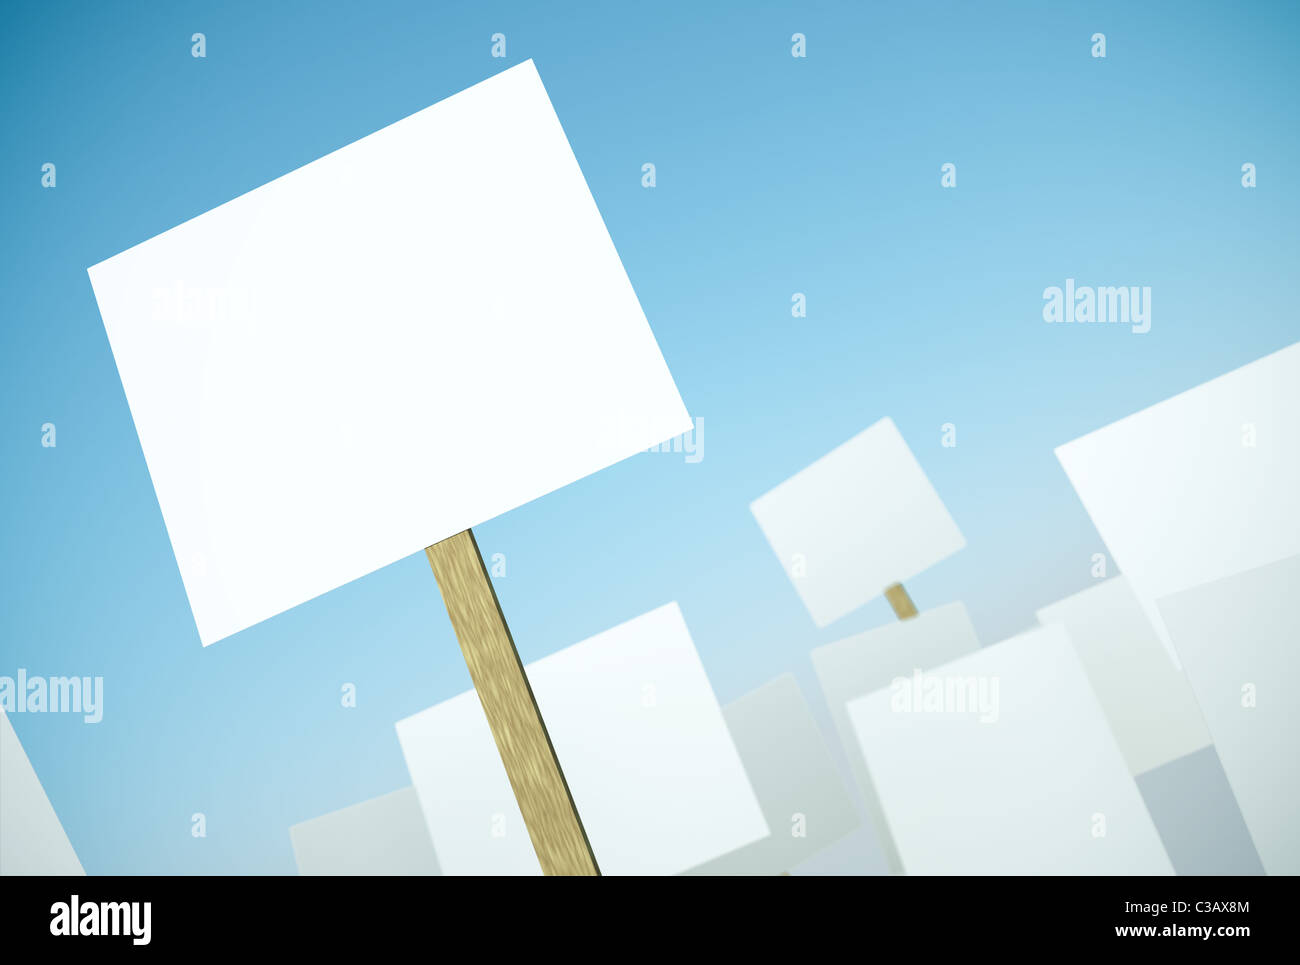 Protest banners - Stock Image